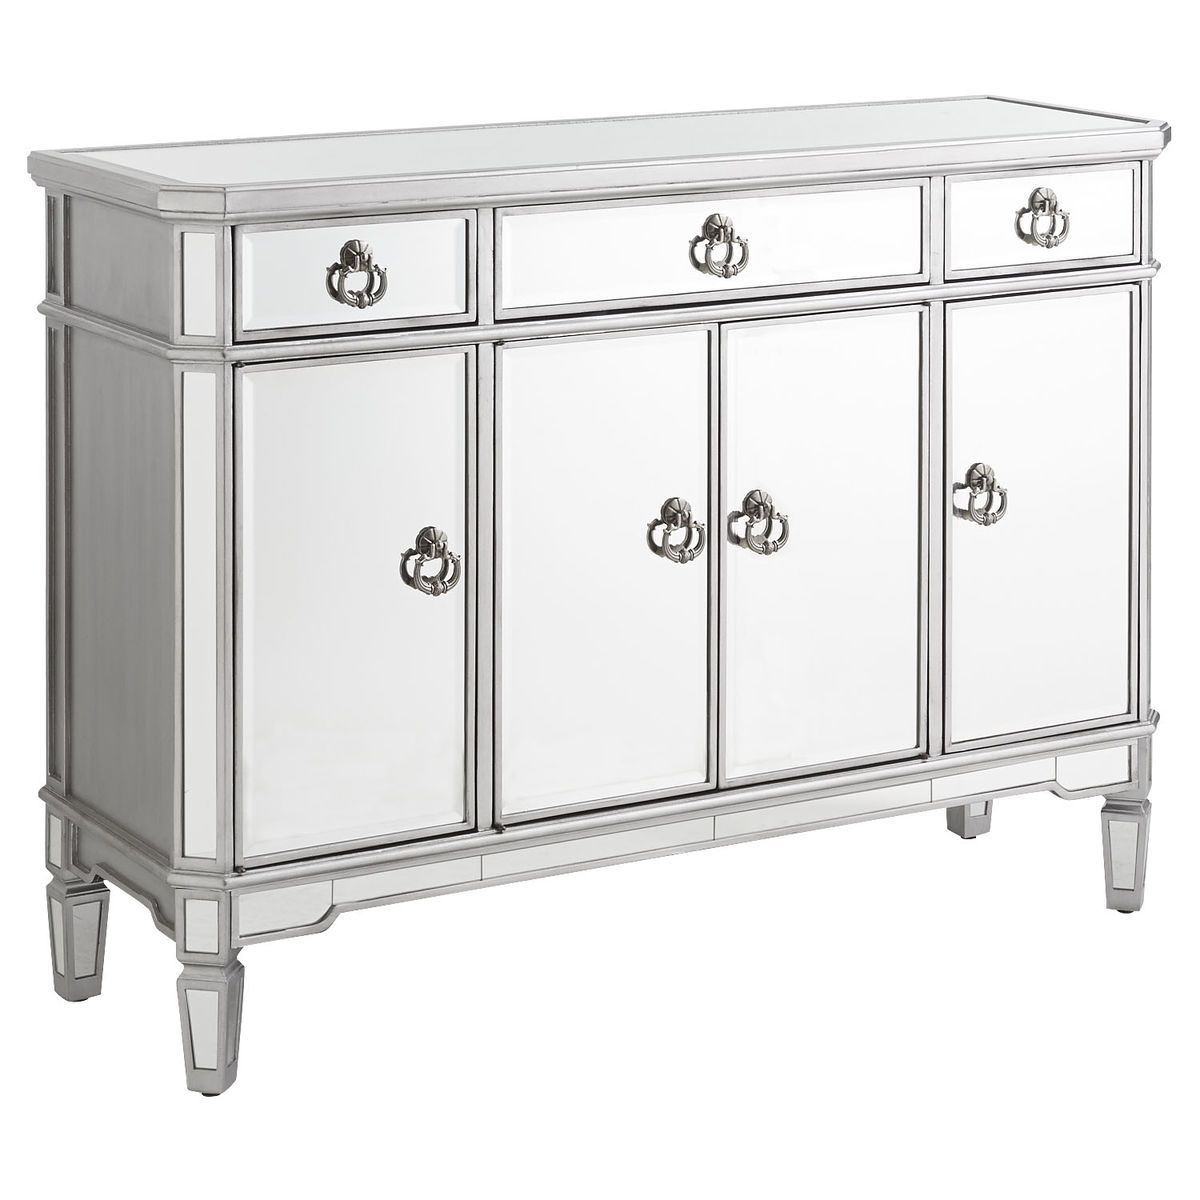 Merriweather Mirrored Buffet